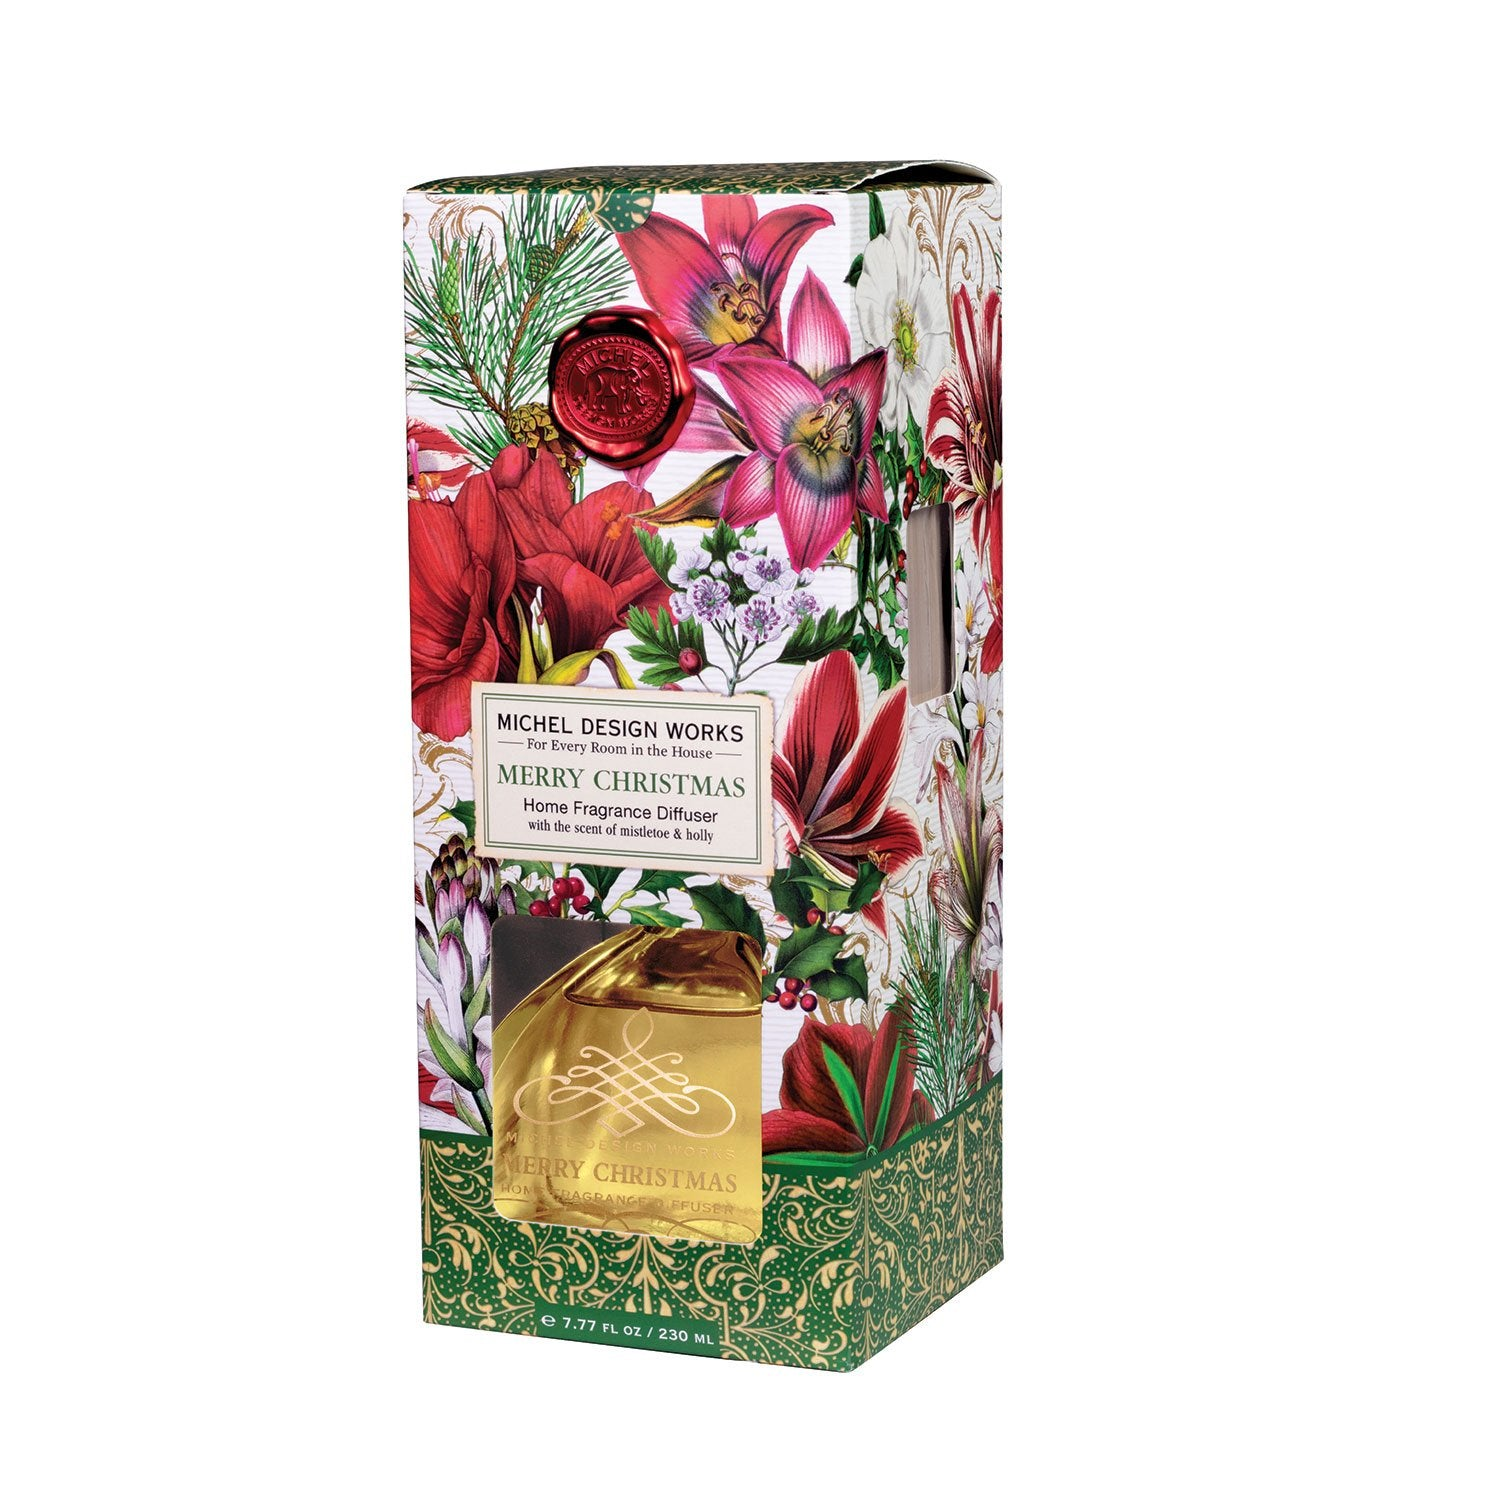 Merry Christmas Home Fragrance Diffuser